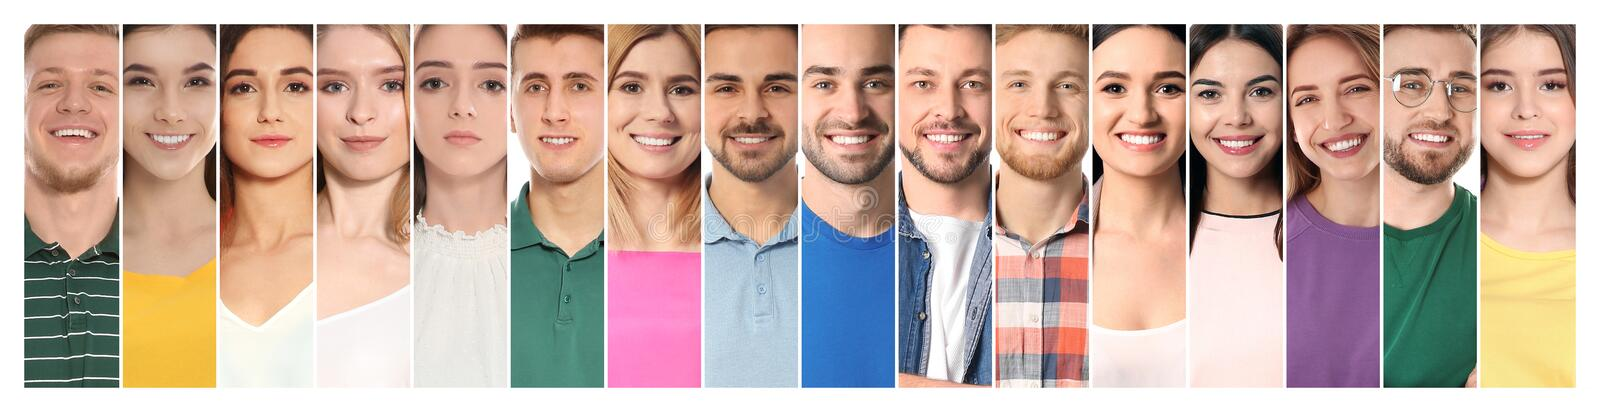 Collage of smiling people, closeup royalty free stock image